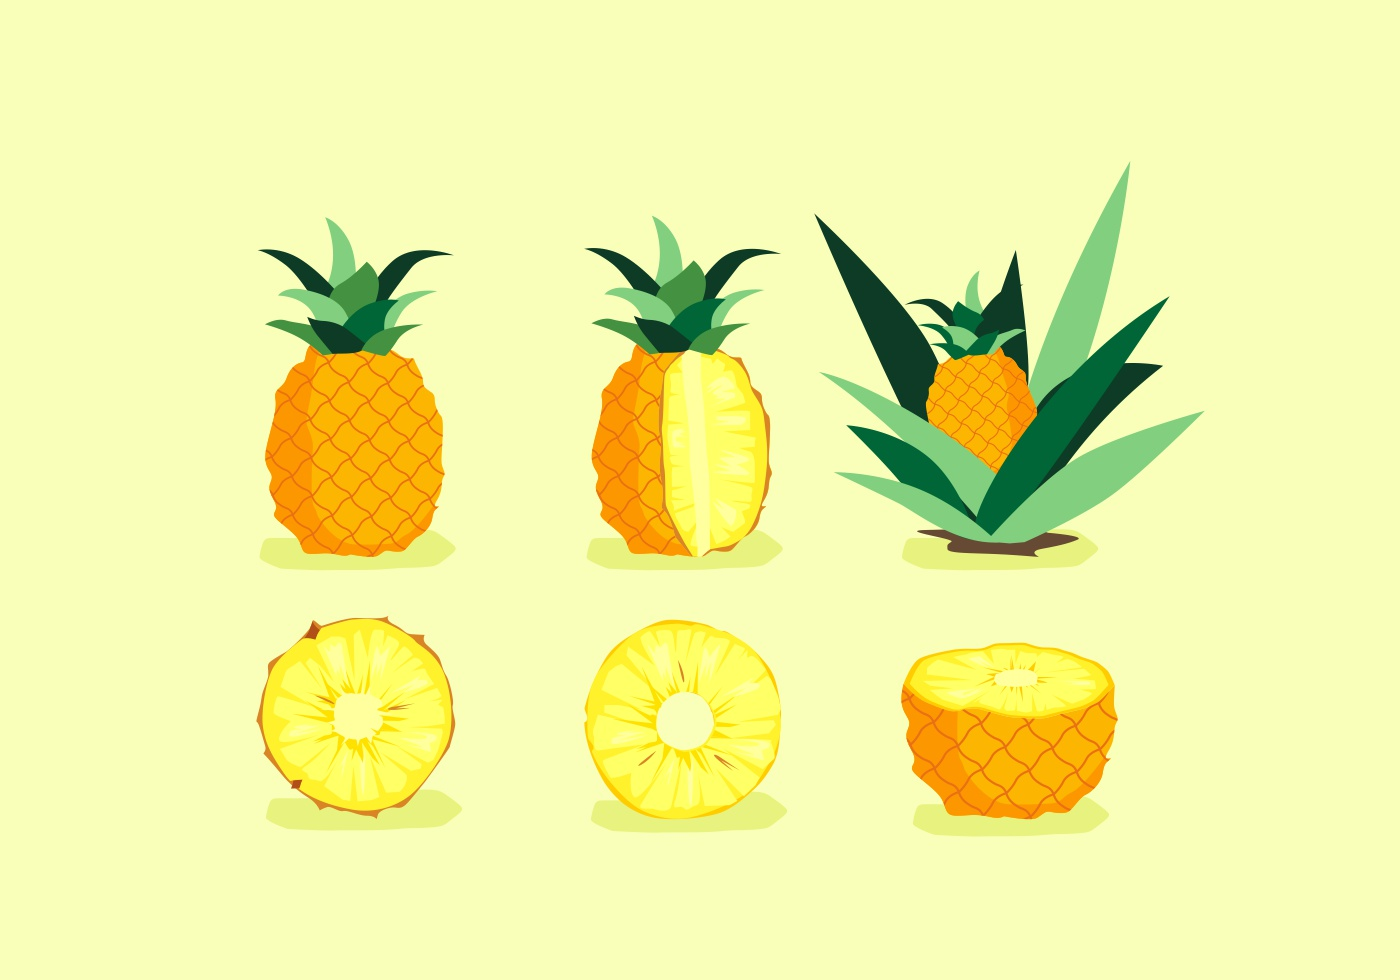 Pineapple Free Vector Art - (5176 Free Downloads)